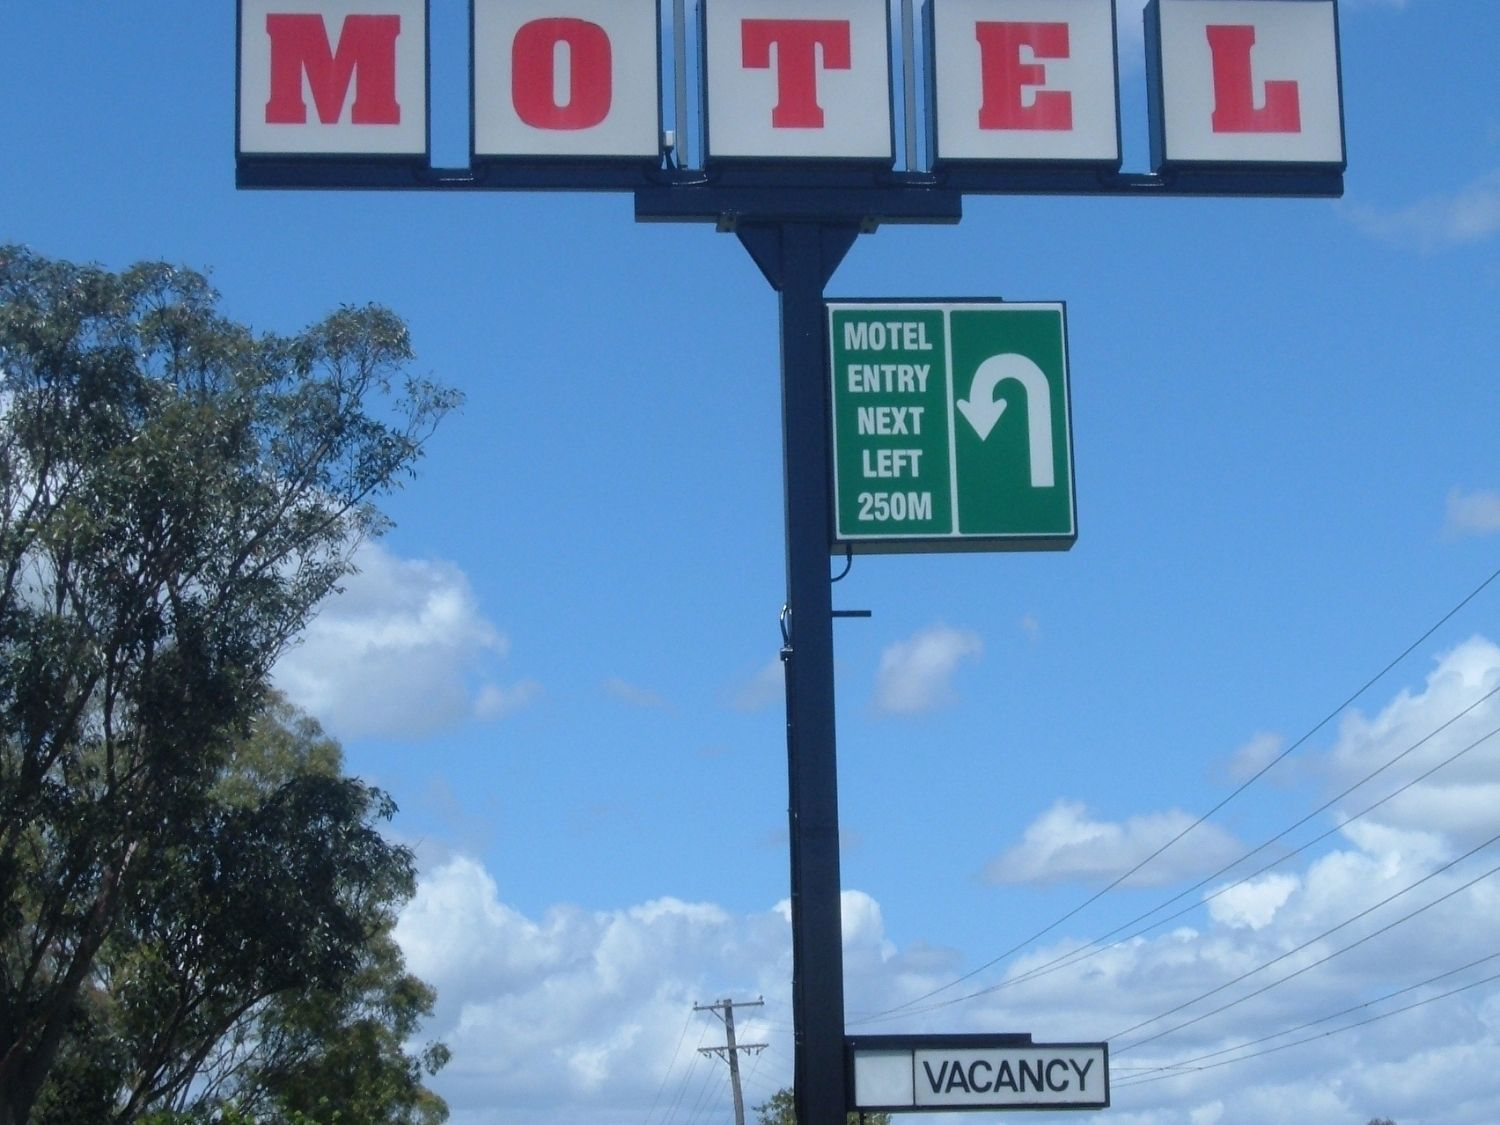 Motel Lease Offered - Price Reduced by $90,000